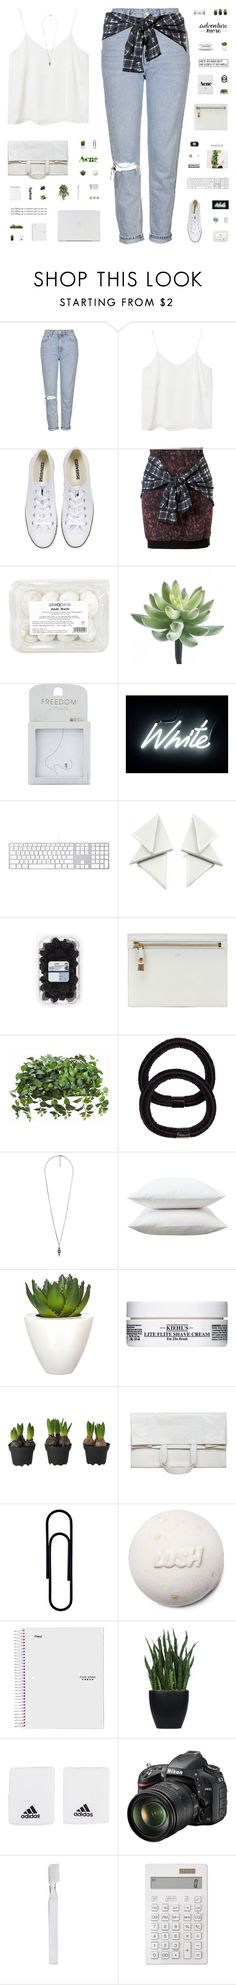 """""""FEEL GOOD"""" by c-hristinep ❤ liked on Polyvore featuring Topshop, Monki, Converse, 3.1 Phillip Lim, Seletti, Tom Ford, John Lewis, Forever 21, Fieldcrest and Pomax"""